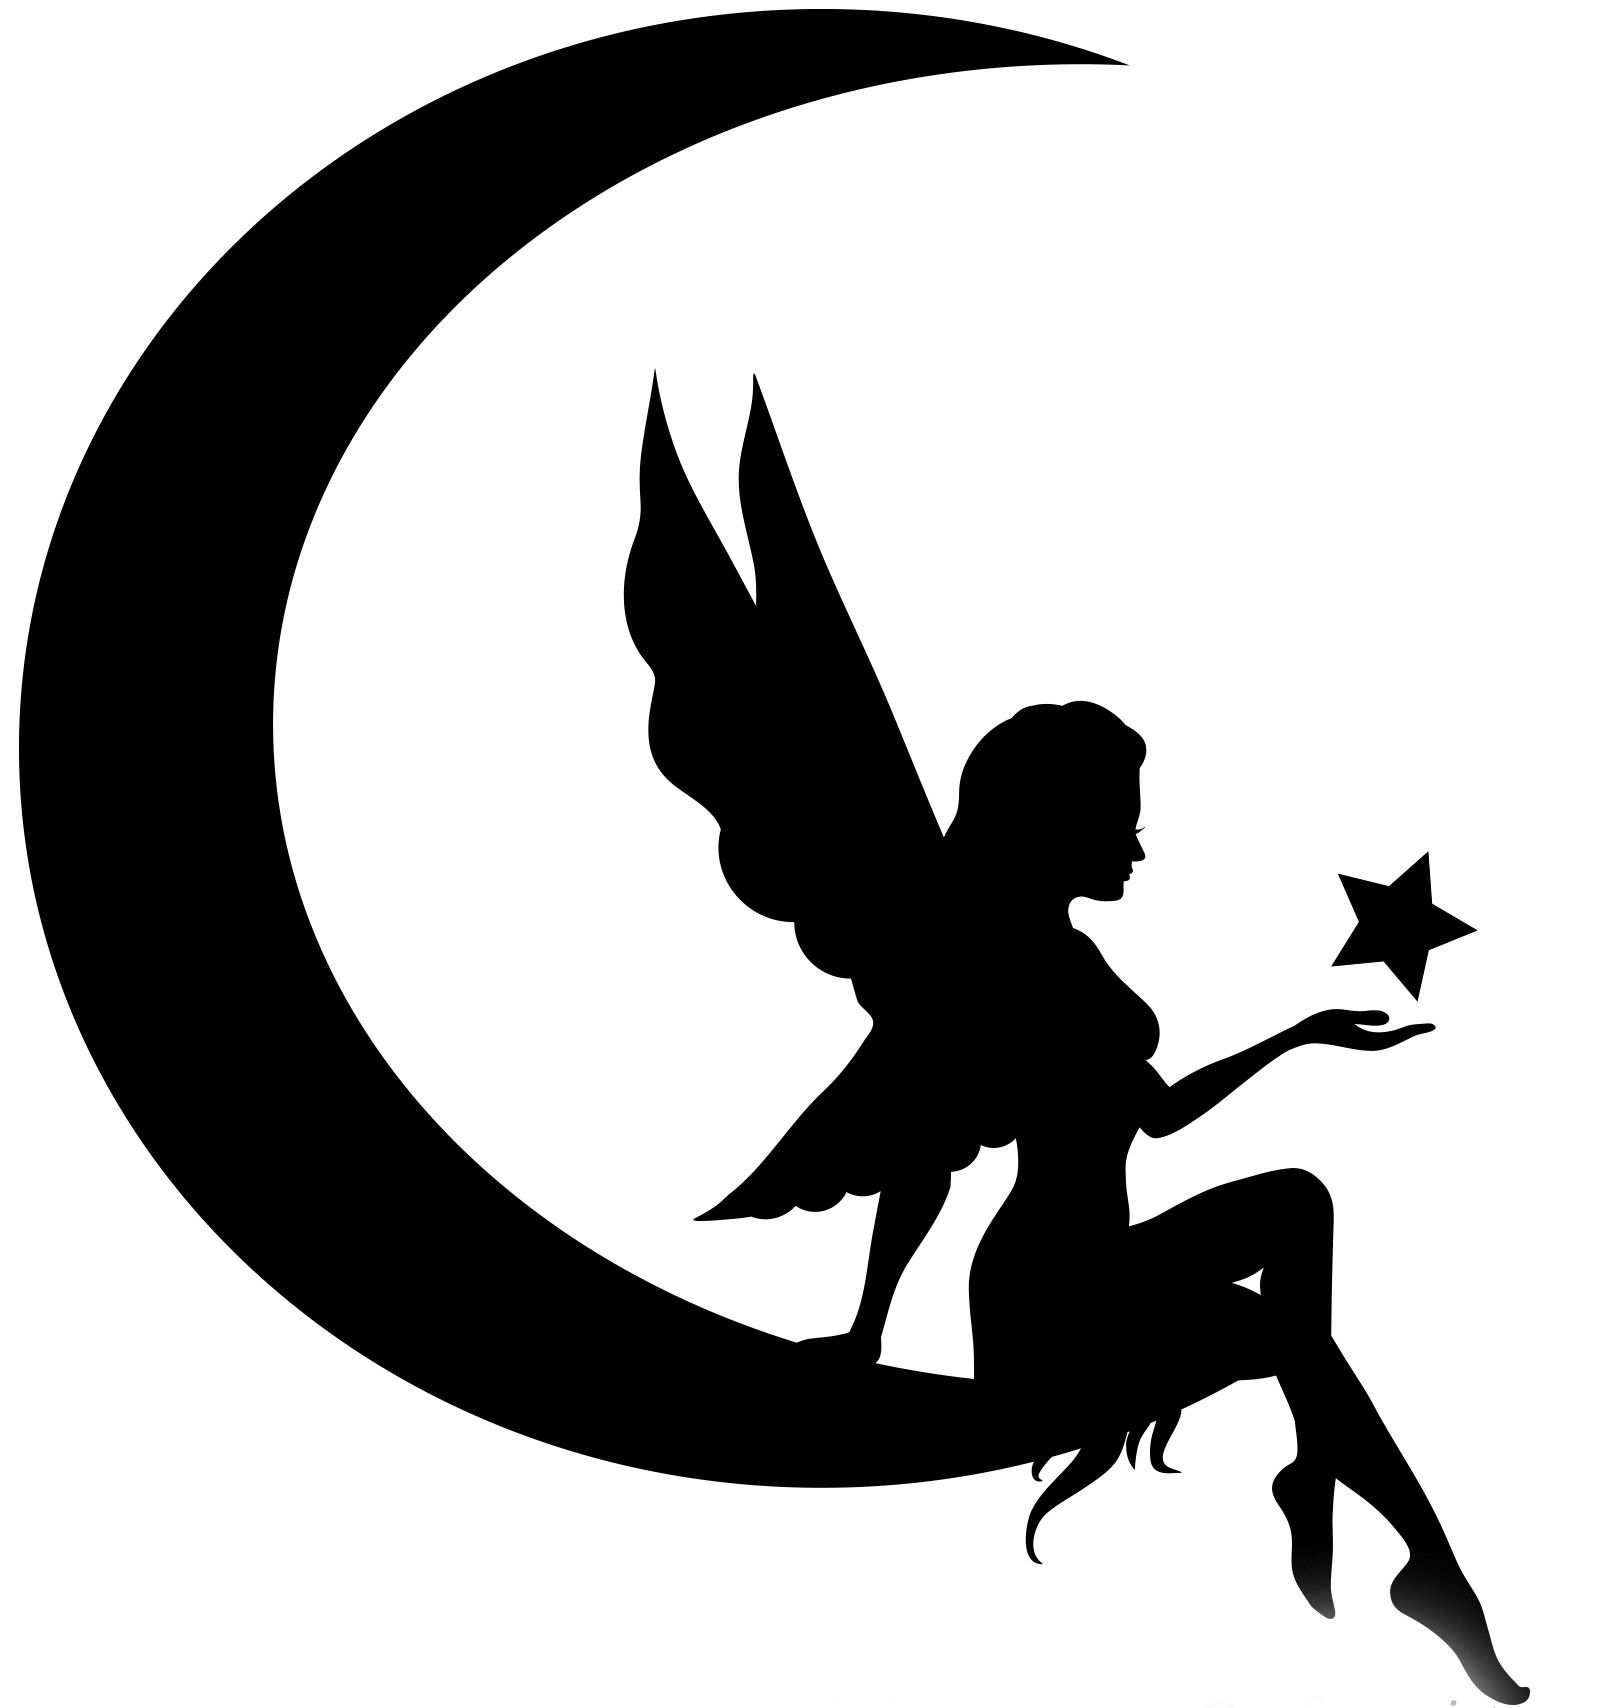 The fairy on the moon wall decal measure 26 inches wide by 30 the fairy on the moon wall decal measure 26 inches wide by 30 inches high amipublicfo Choice Image